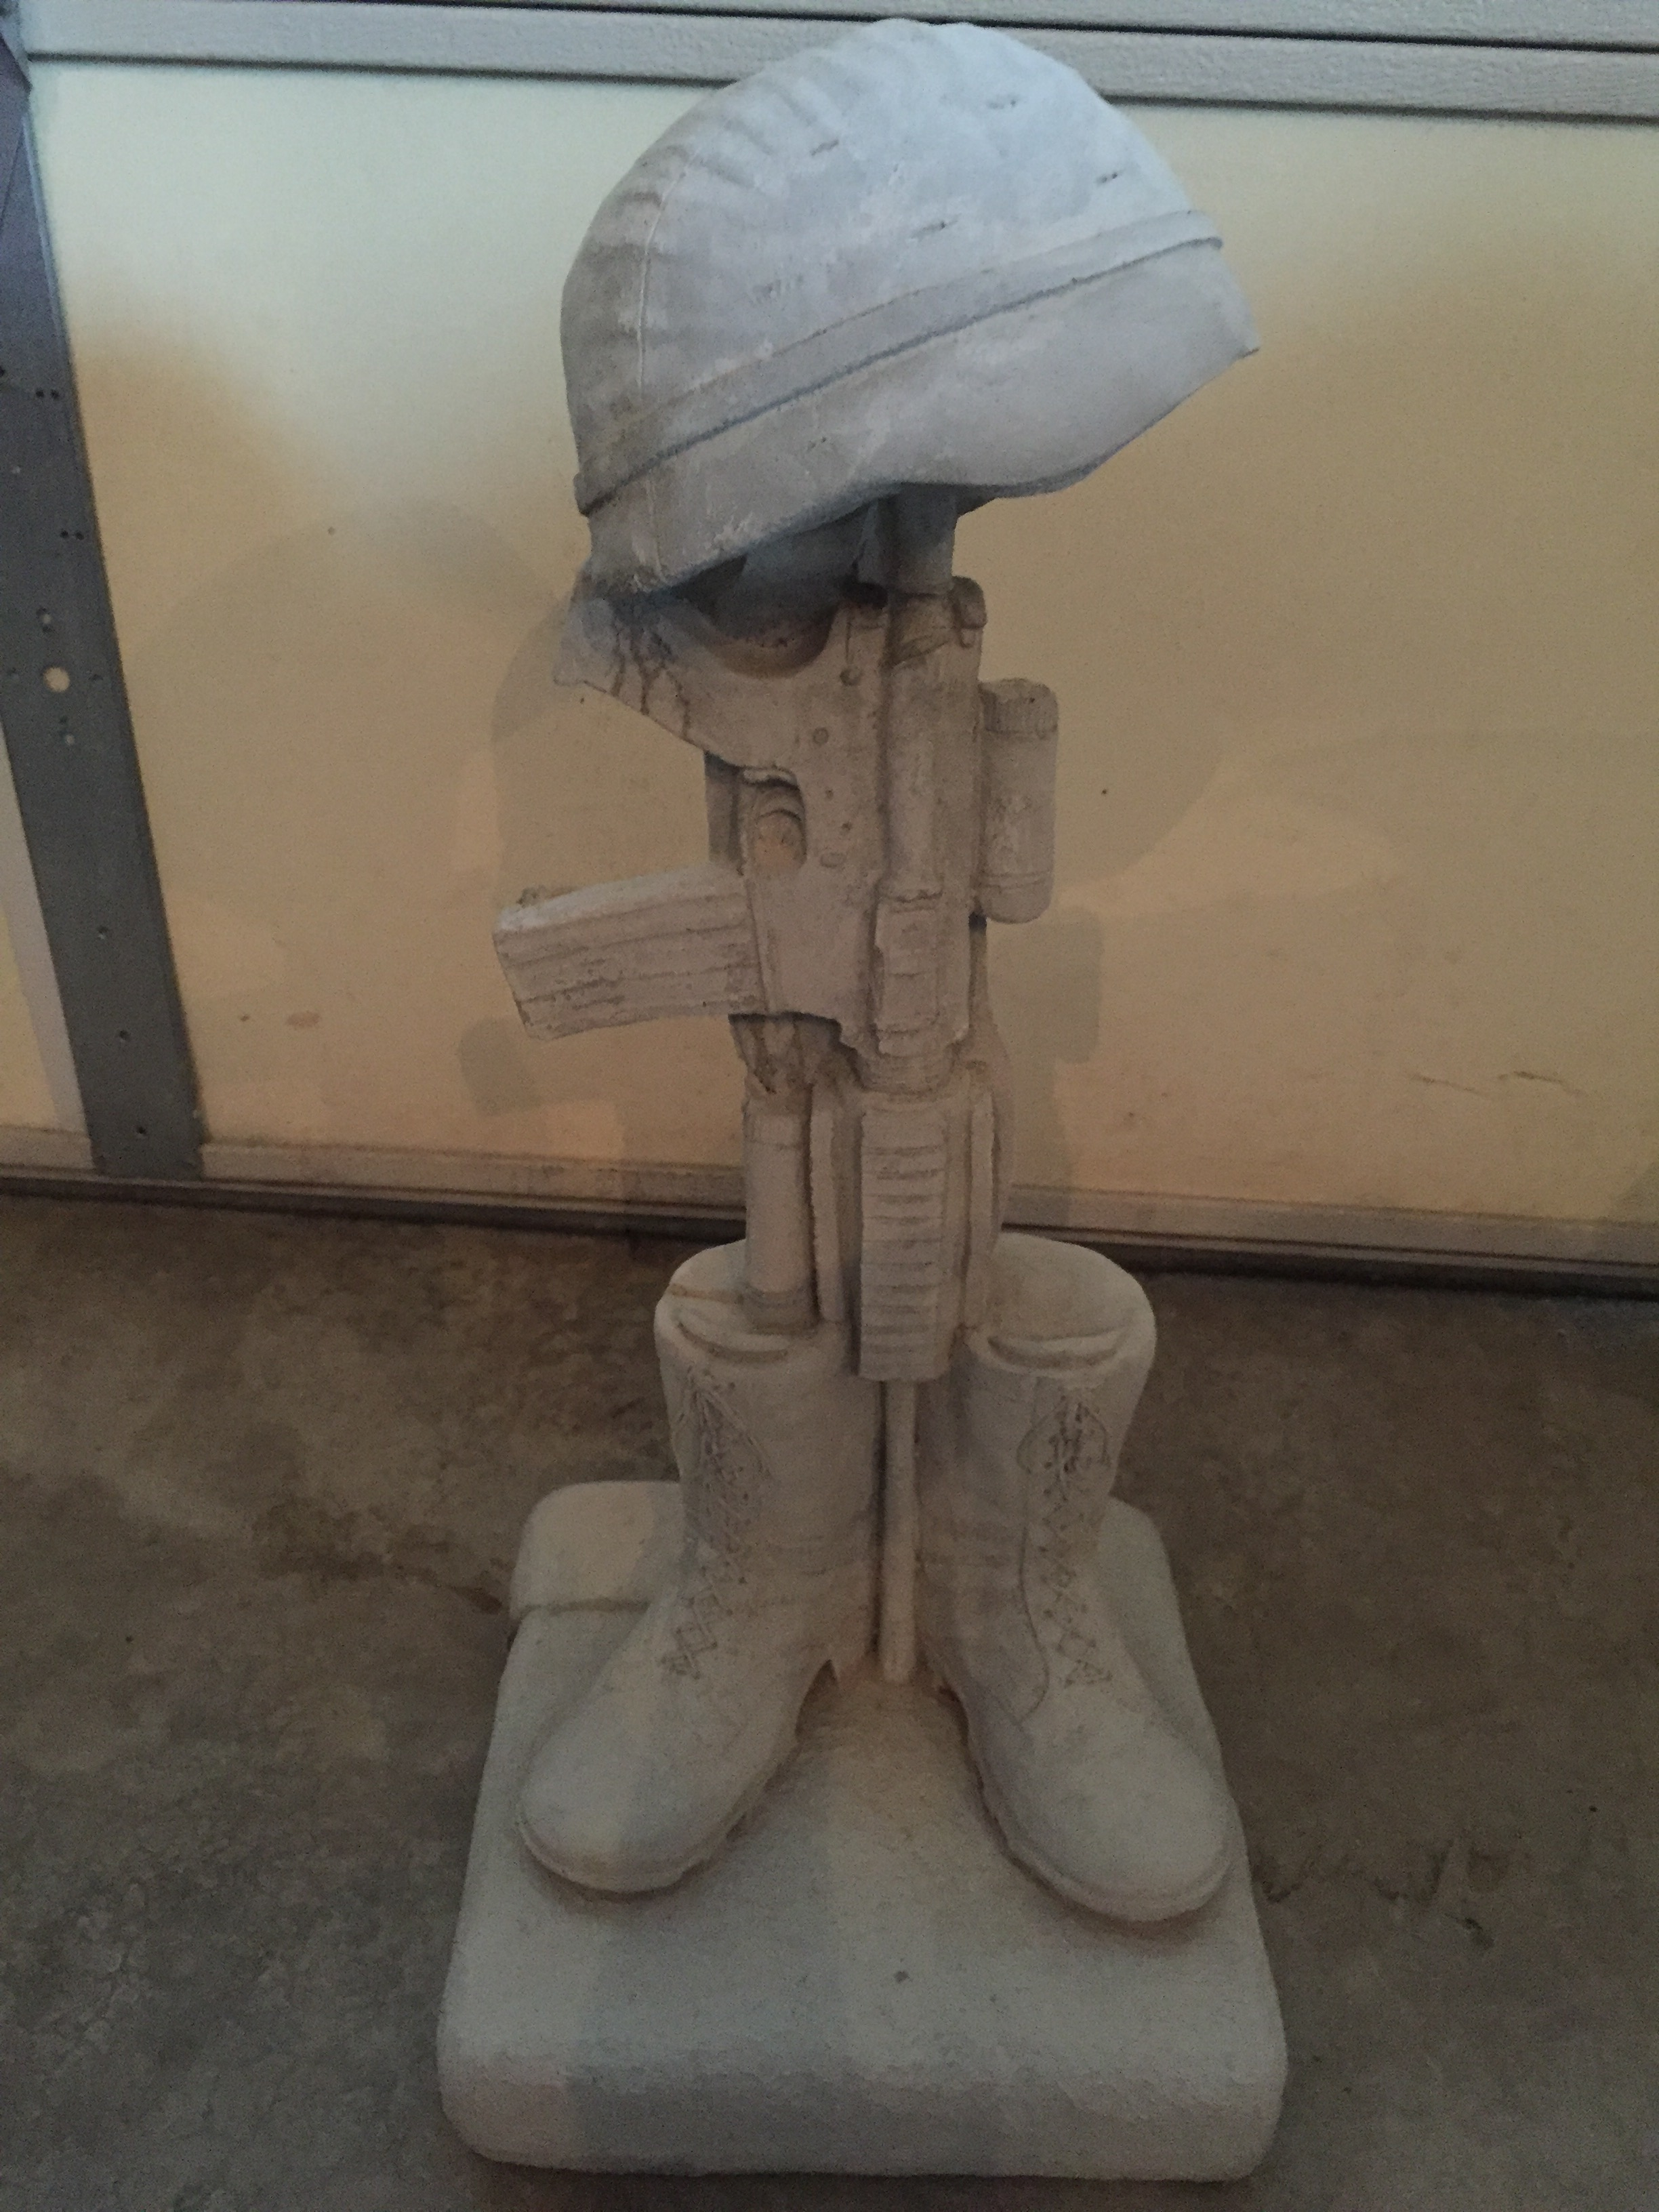 Latest Project Up On The Hill:  Concrete Statue